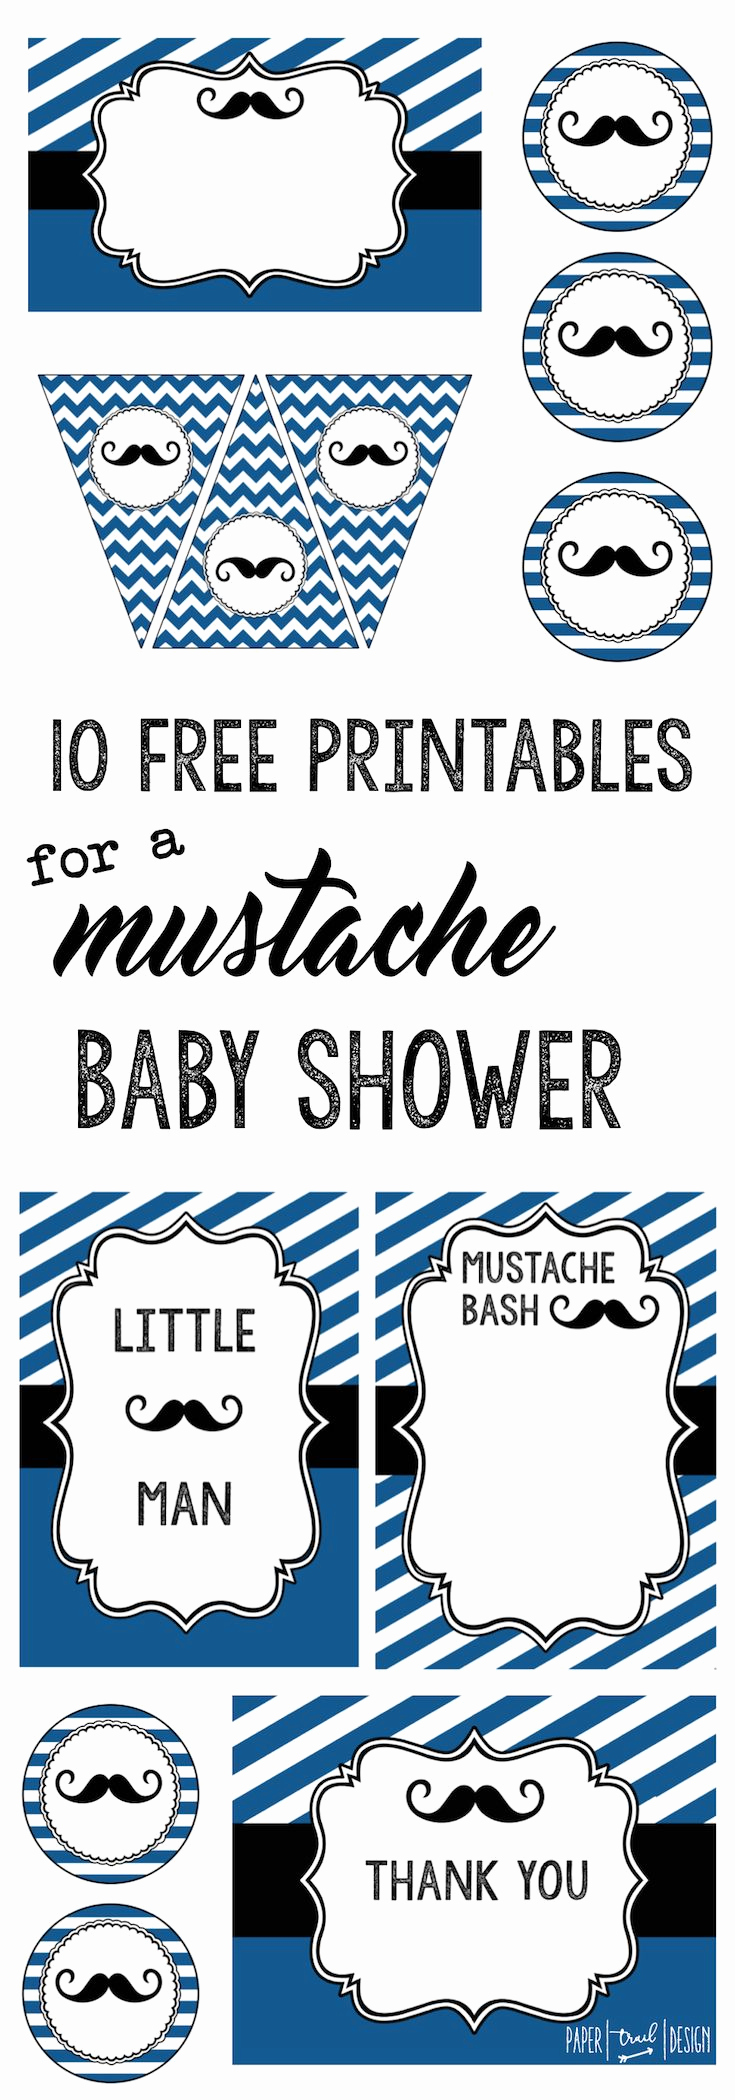 Mustache Baby Shower Invitation Fresh Mustache Party 10 Free Printables